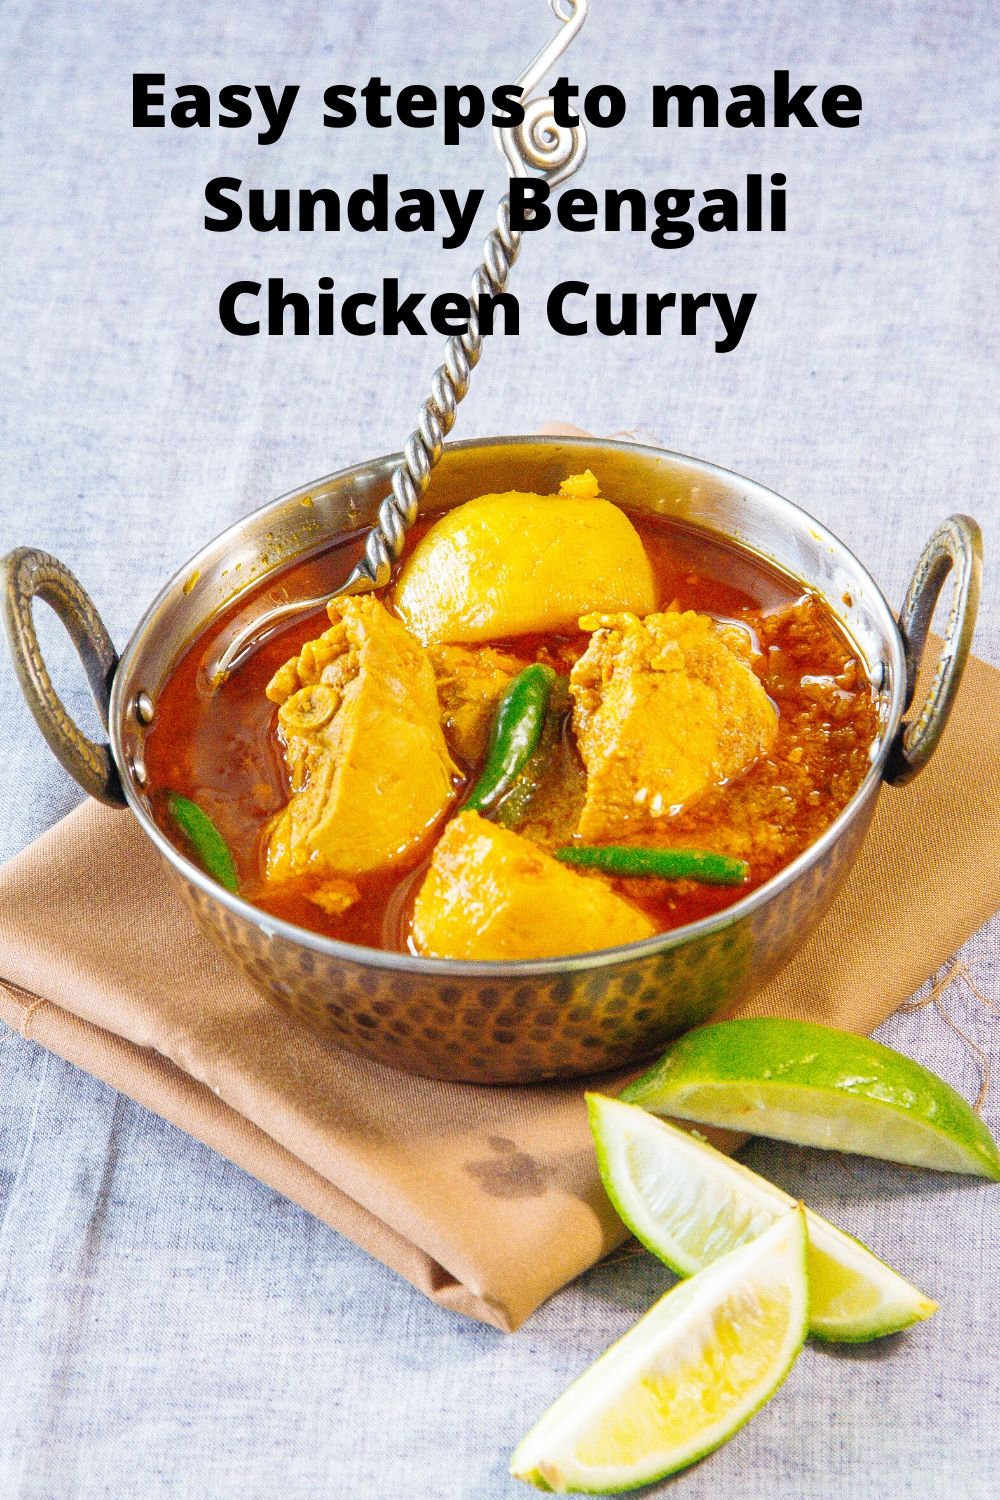 Easy steps to cook Sunday bengali chicken curry - 1